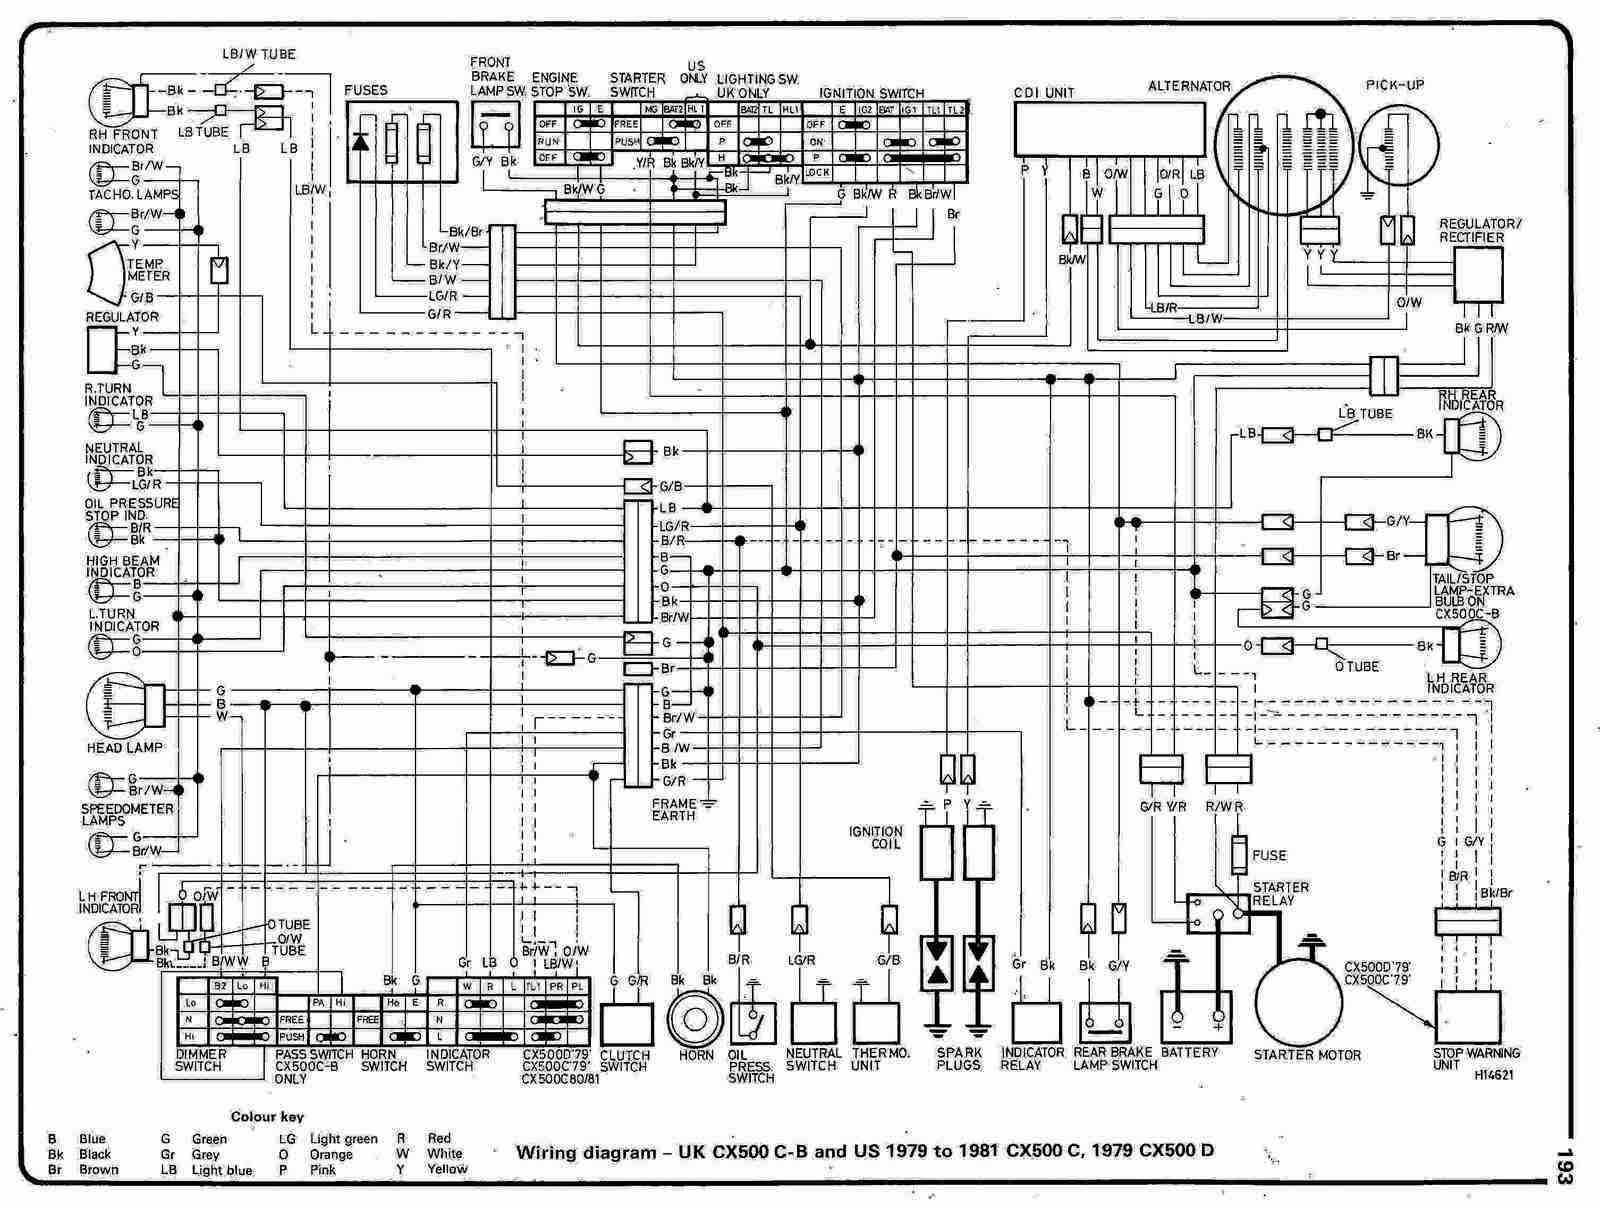 hino alternator wiring diagram with Honda Cx500 C Motorcycle 1979 1981 And on Elec likewise Honda Cx500 C Motorcycle 1979 1981 And in addition Volkswagen Diy Tips For Changing Fuses also How To Replace An Alternator furthermore 2009 2010 Toyota Corolla Electrical Wiring Diagrams.